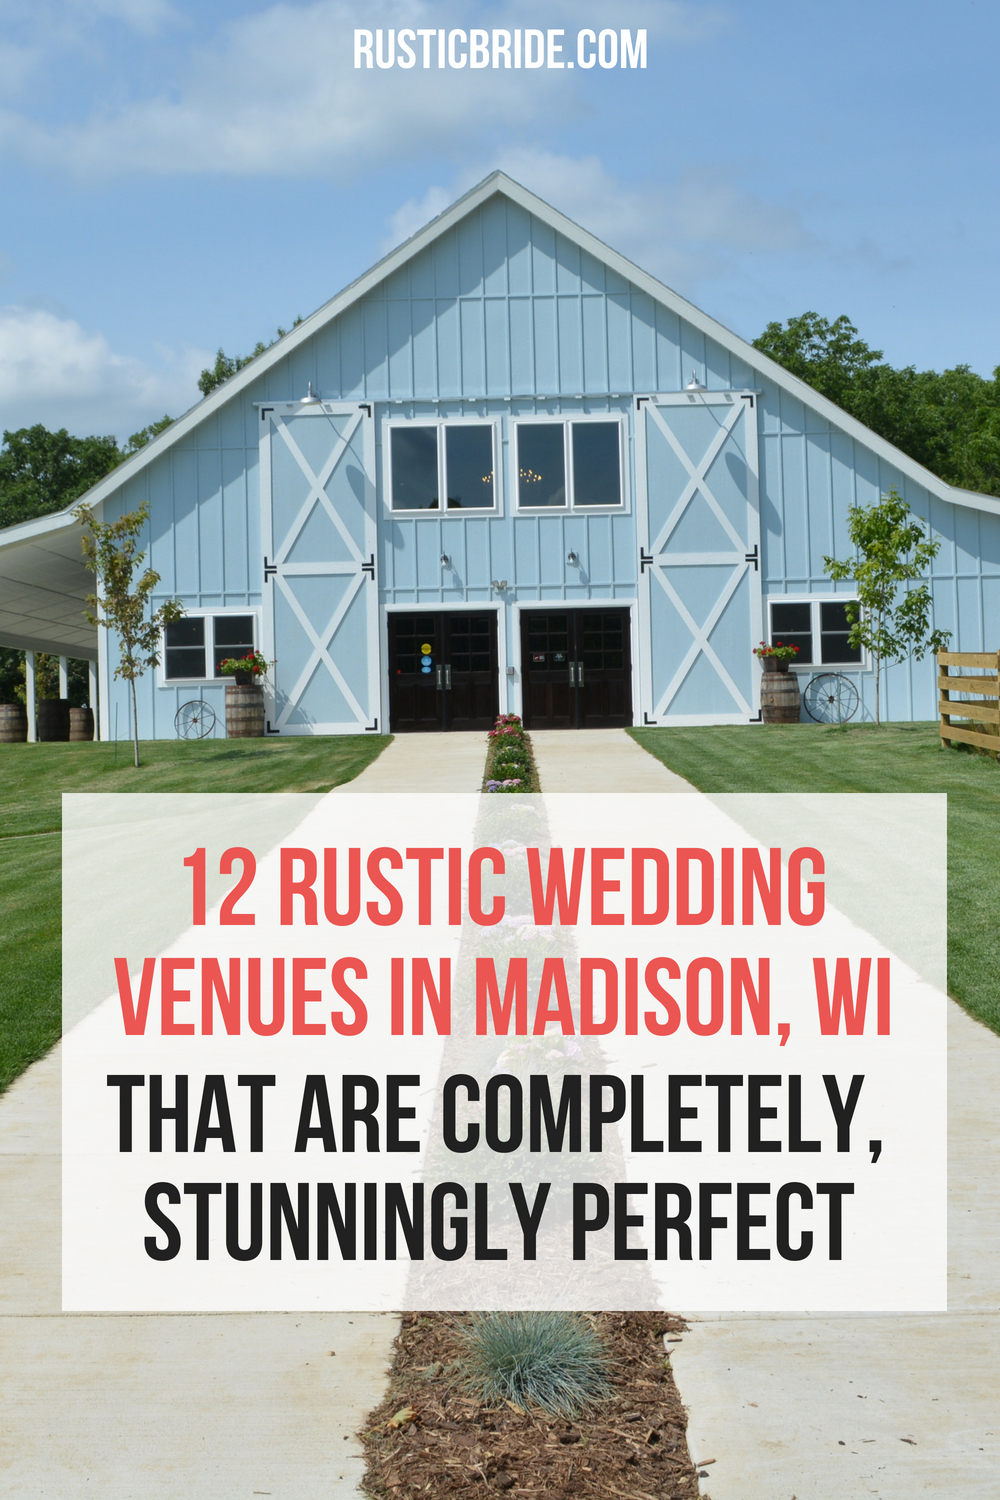 12 Rustic Wedding Venues in Madison, Wisconsin That Are ...